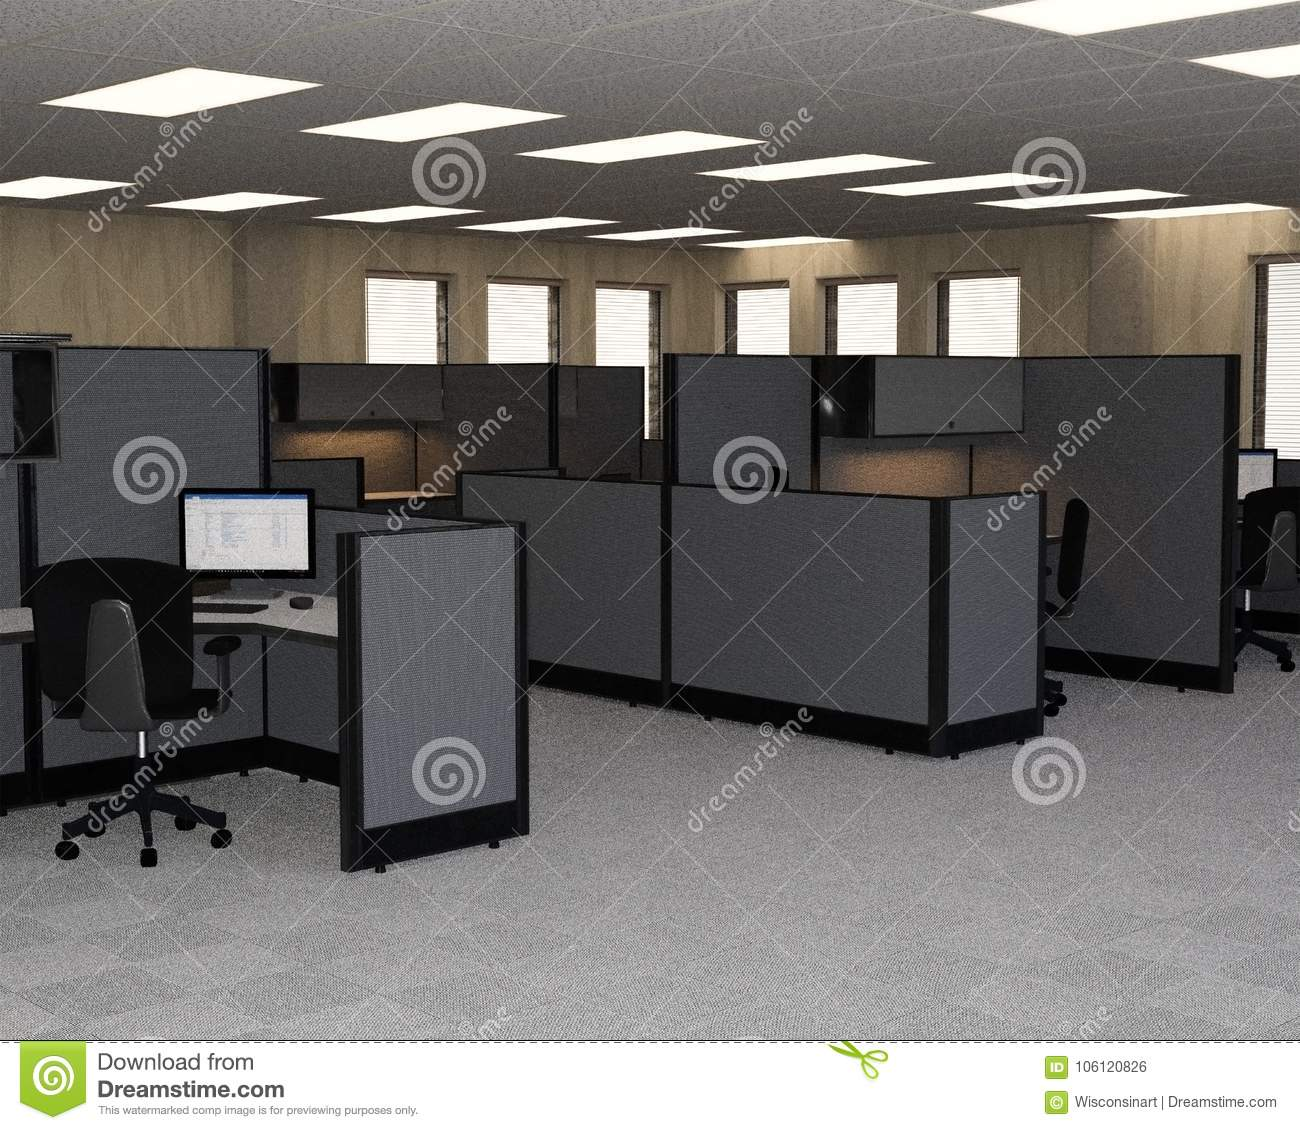 download office desk cubicles design. Plain Office Download Business Sales Office Cubicles Cubes Stock Photo  Image Of  Wisconsinart Cubicle Throughout Office Desk Cubicles Design E